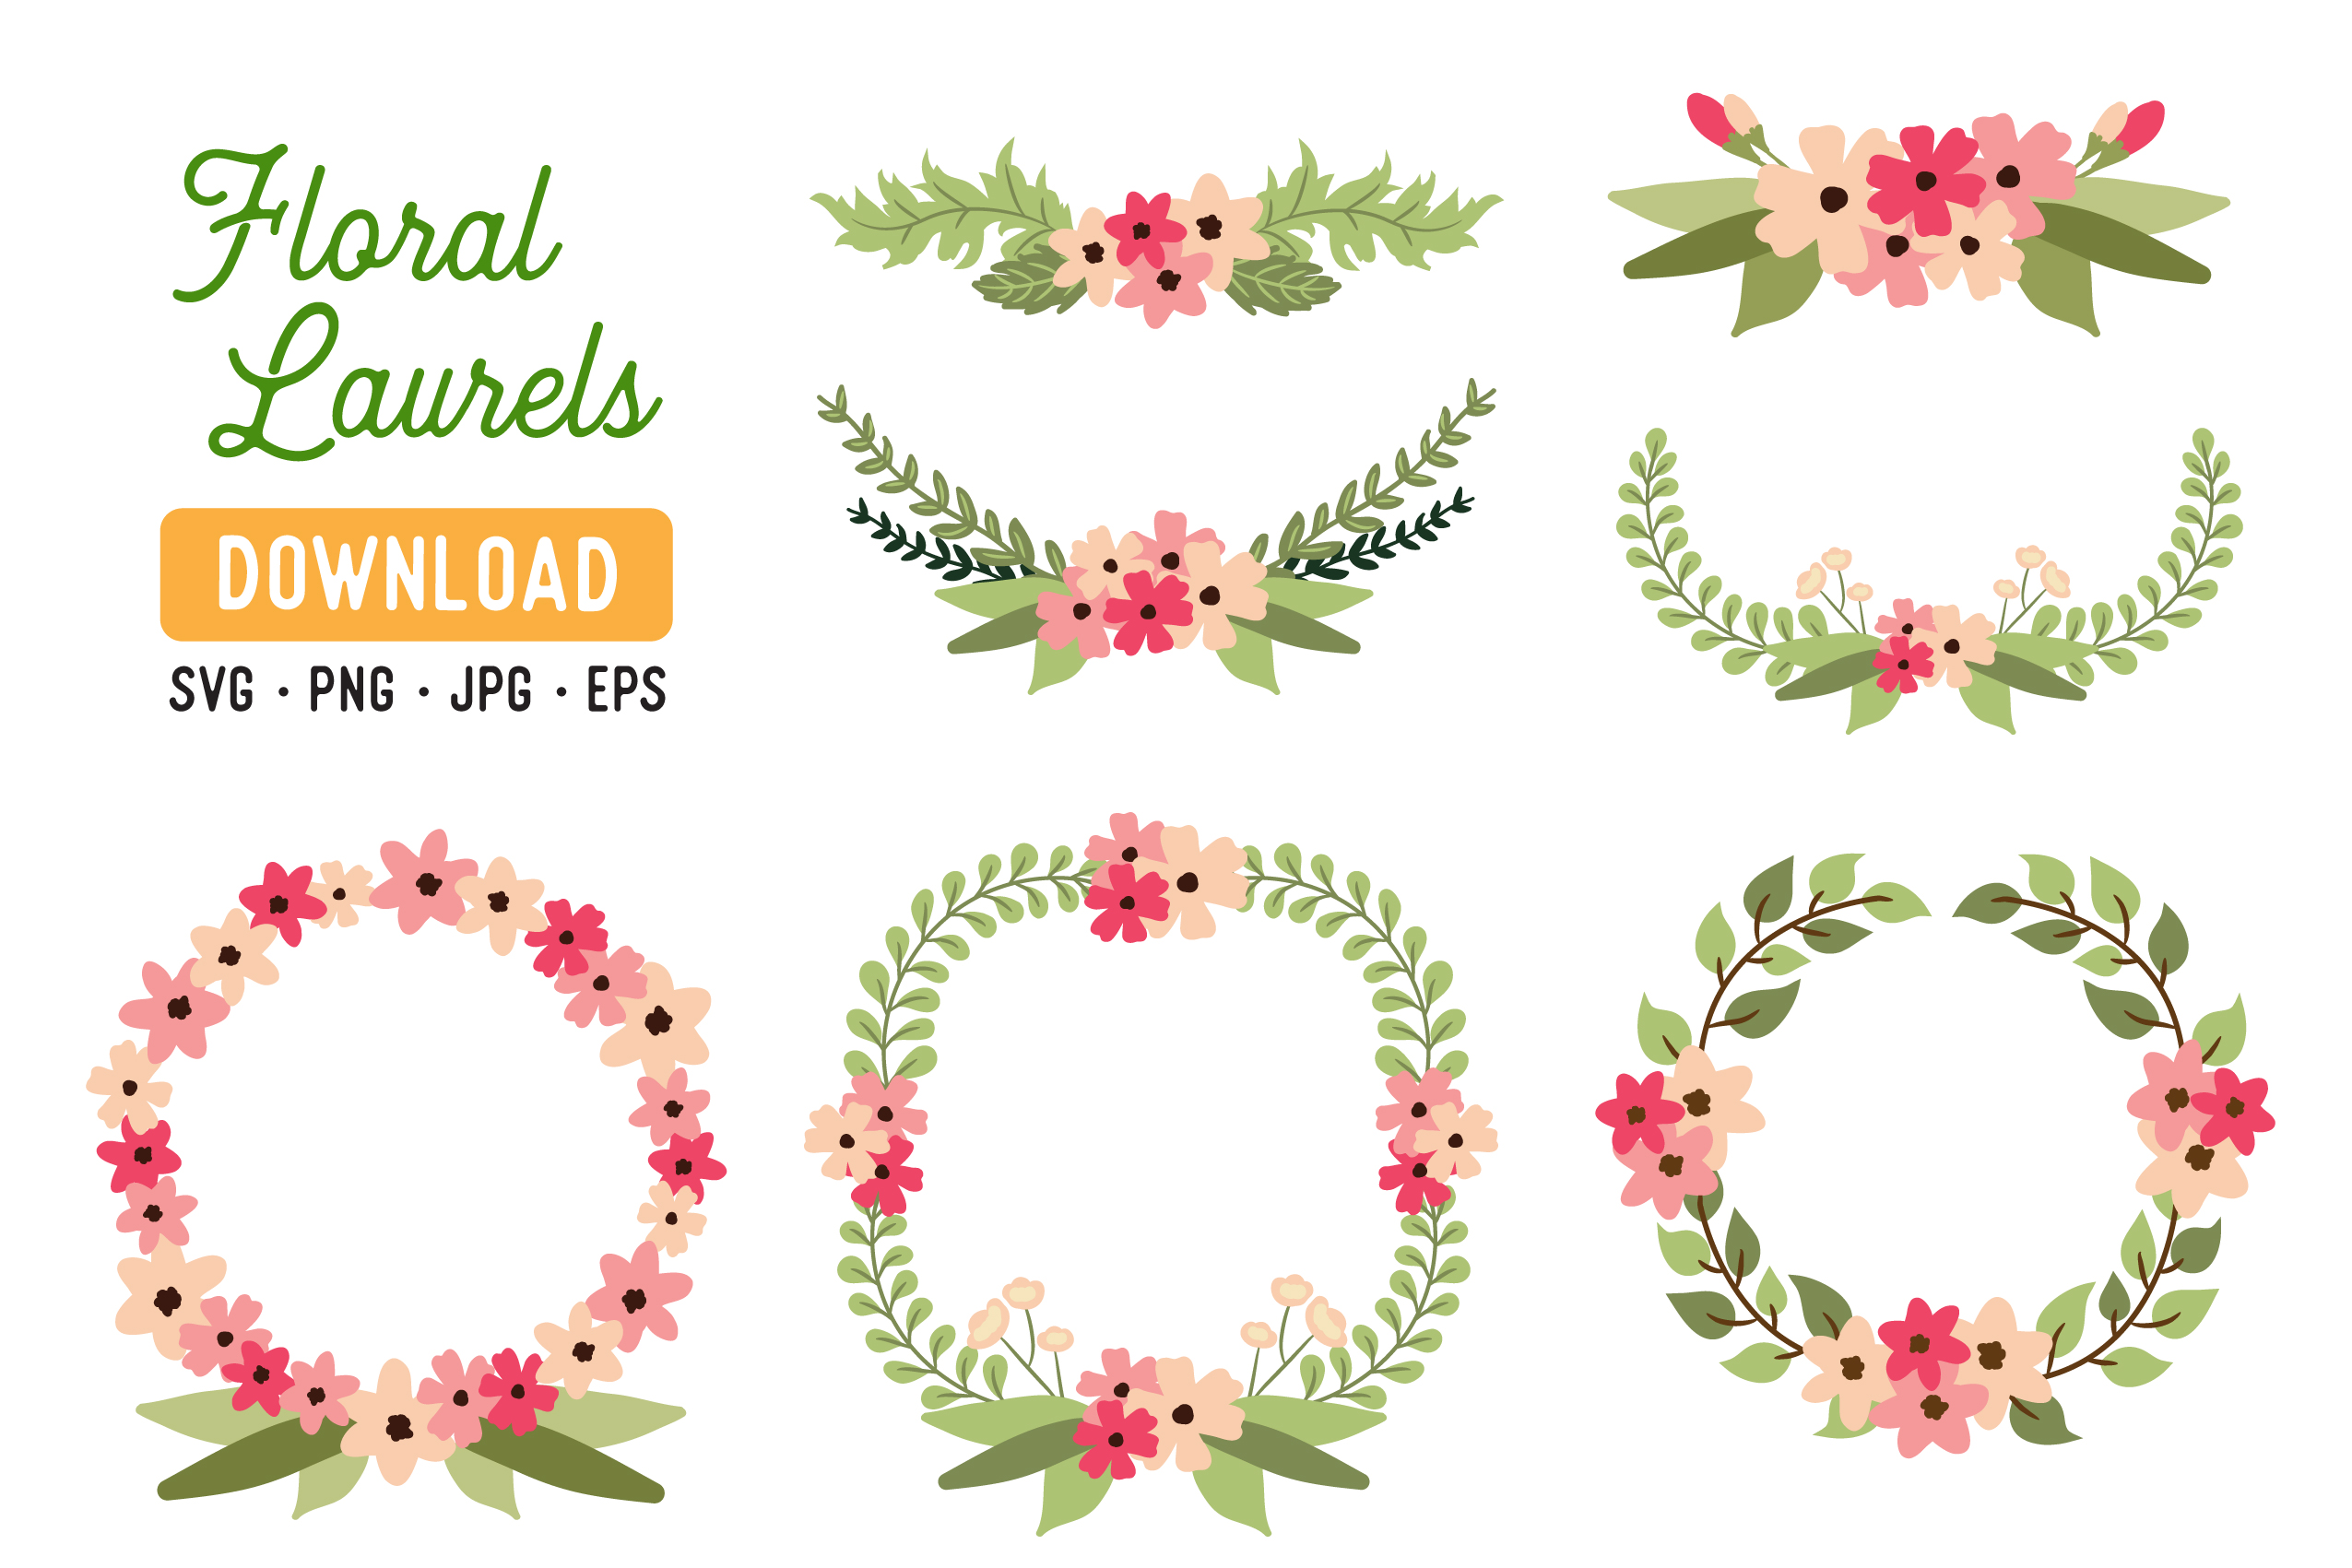 Download Free Flower Wreath Laurel Clipart Pack Graphic By The Gradient Fox for Cricut Explore, Silhouette and other cutting machines.